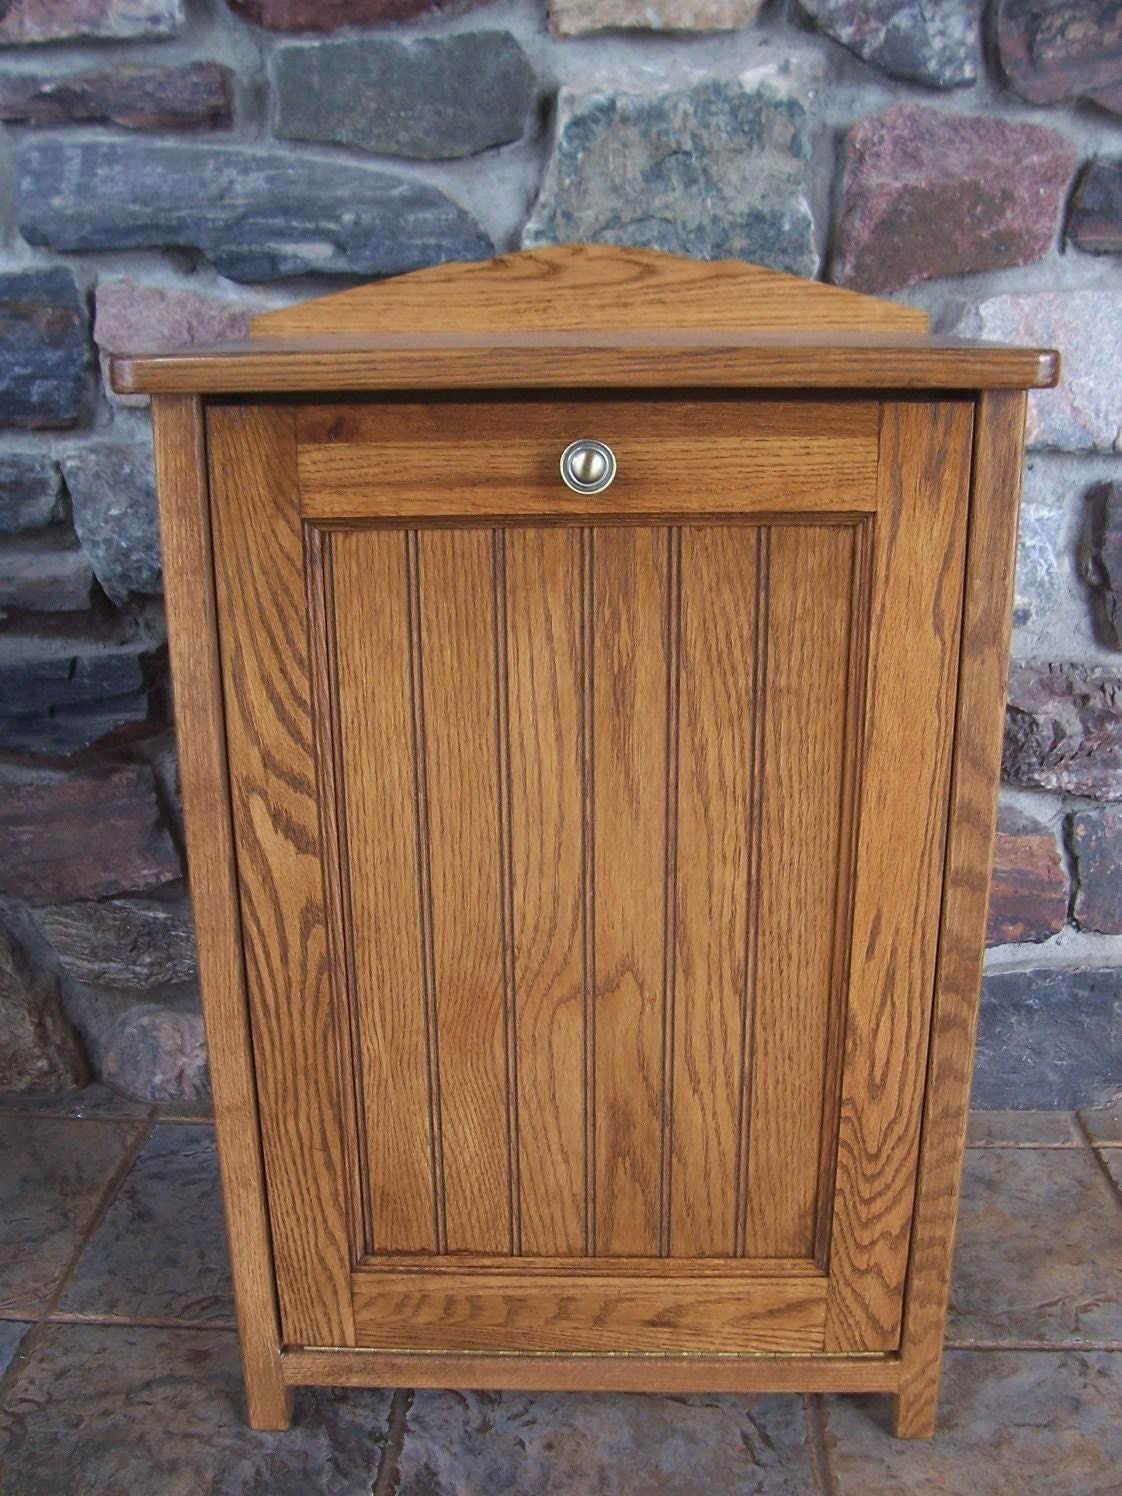 New Oak Wood Kitchen Trash Bin Tilt Out Door